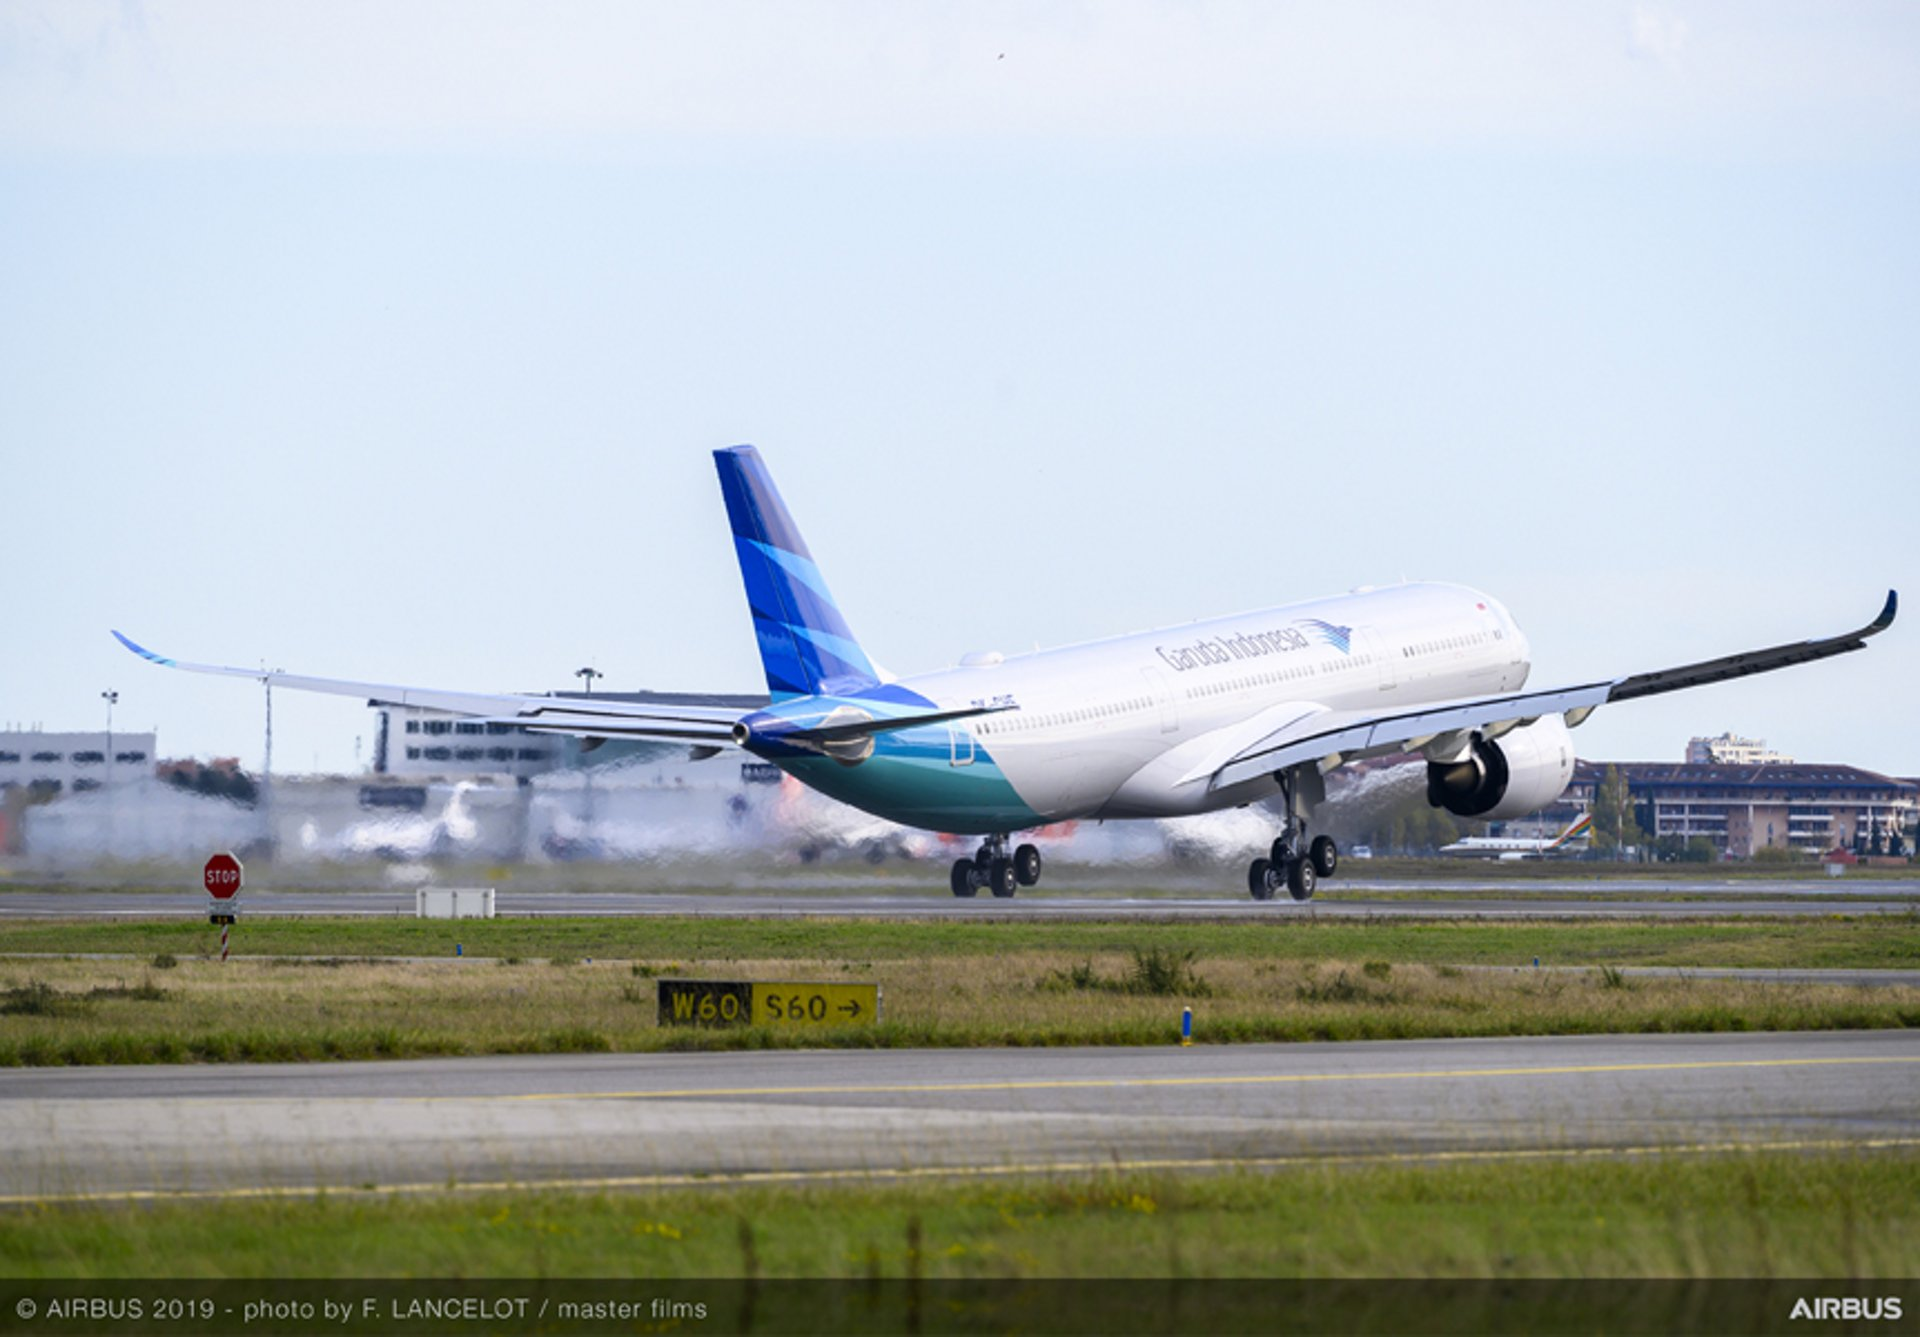 Delivery of Garuda Indonesia's first A330neo